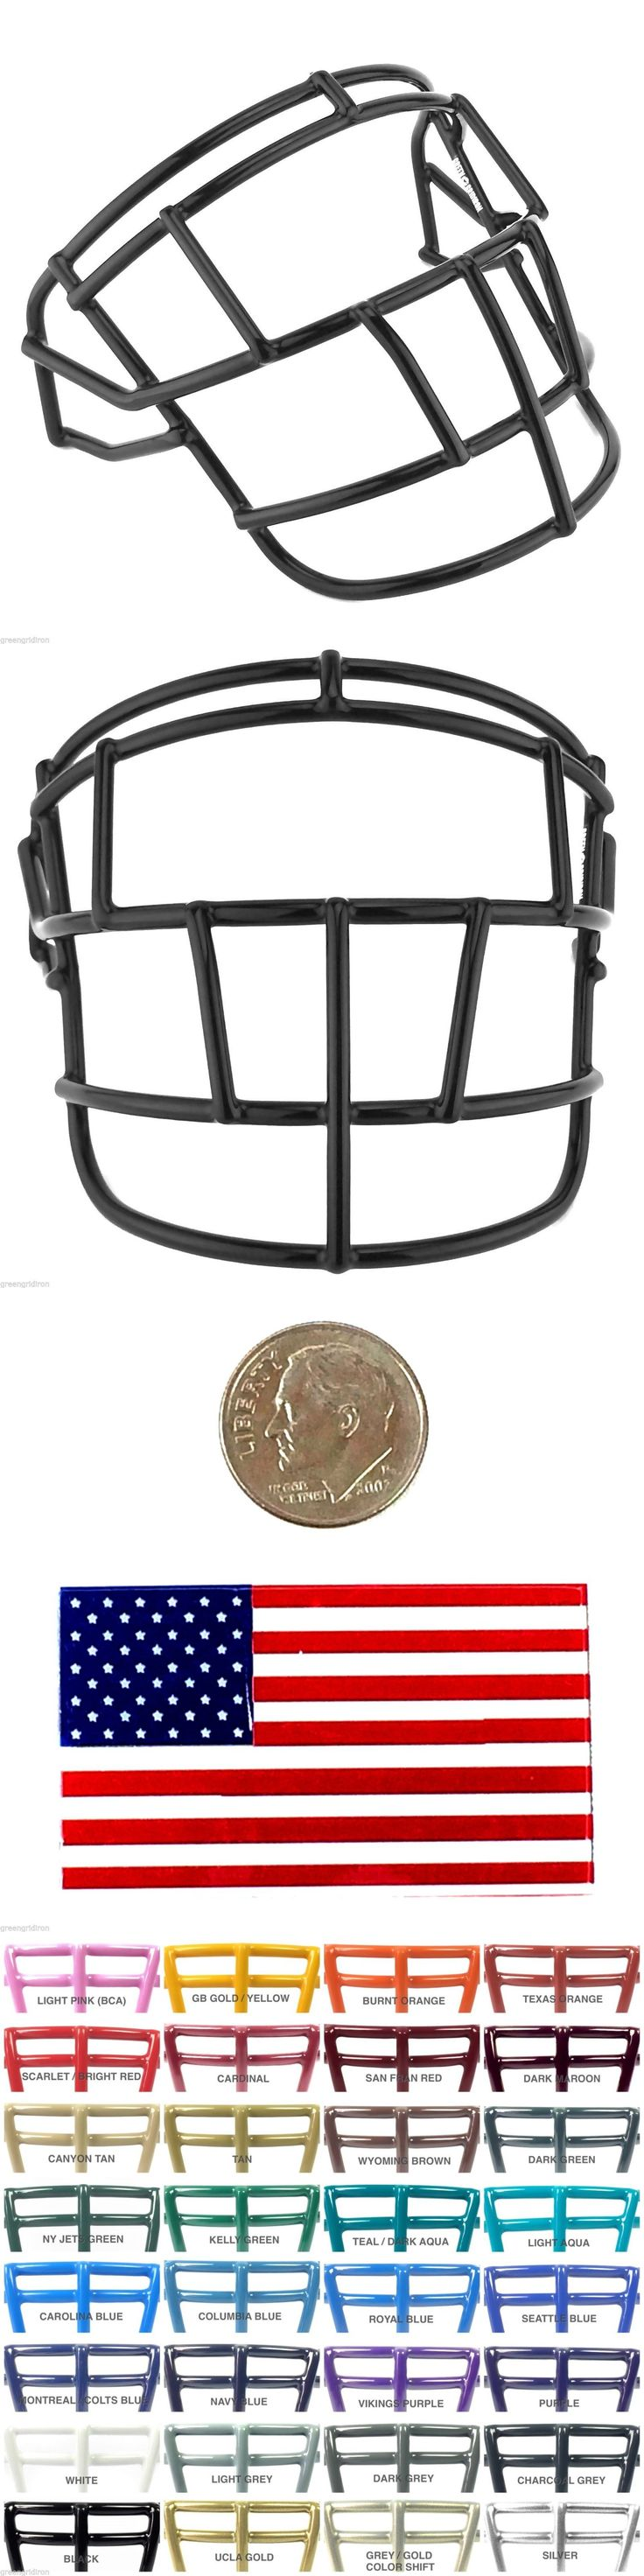 Helmets and Hats 21222: Schutt Super Pro Egjop Football Facemask - 30+ Colors Available -> BUY IT NOW ONLY: $30 on eBay!